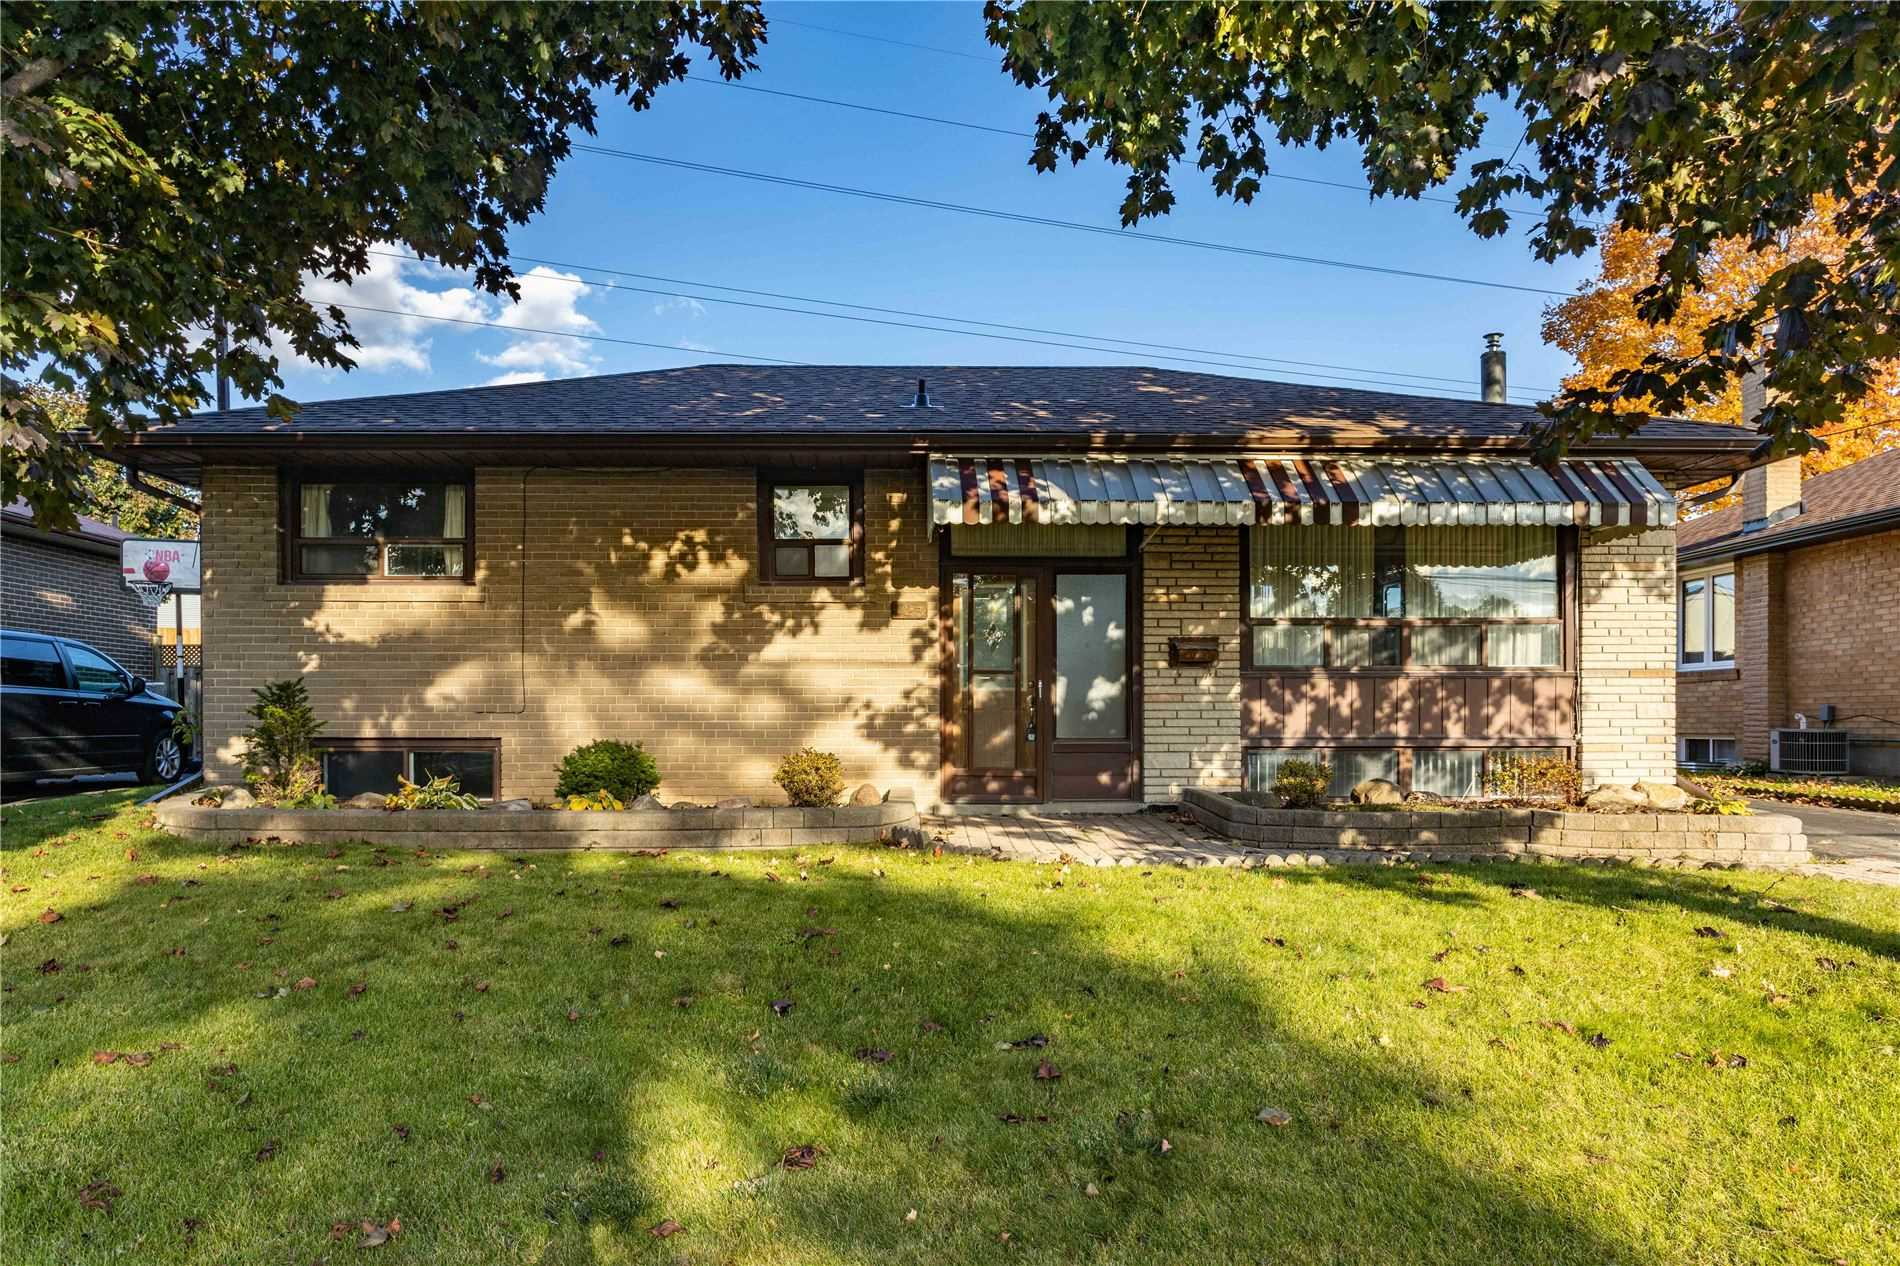 For Sale: 123 Bowman Avenue, Whitby, ON | 3 Bed, 1 Bath House for $549000.00. See 33 photos!